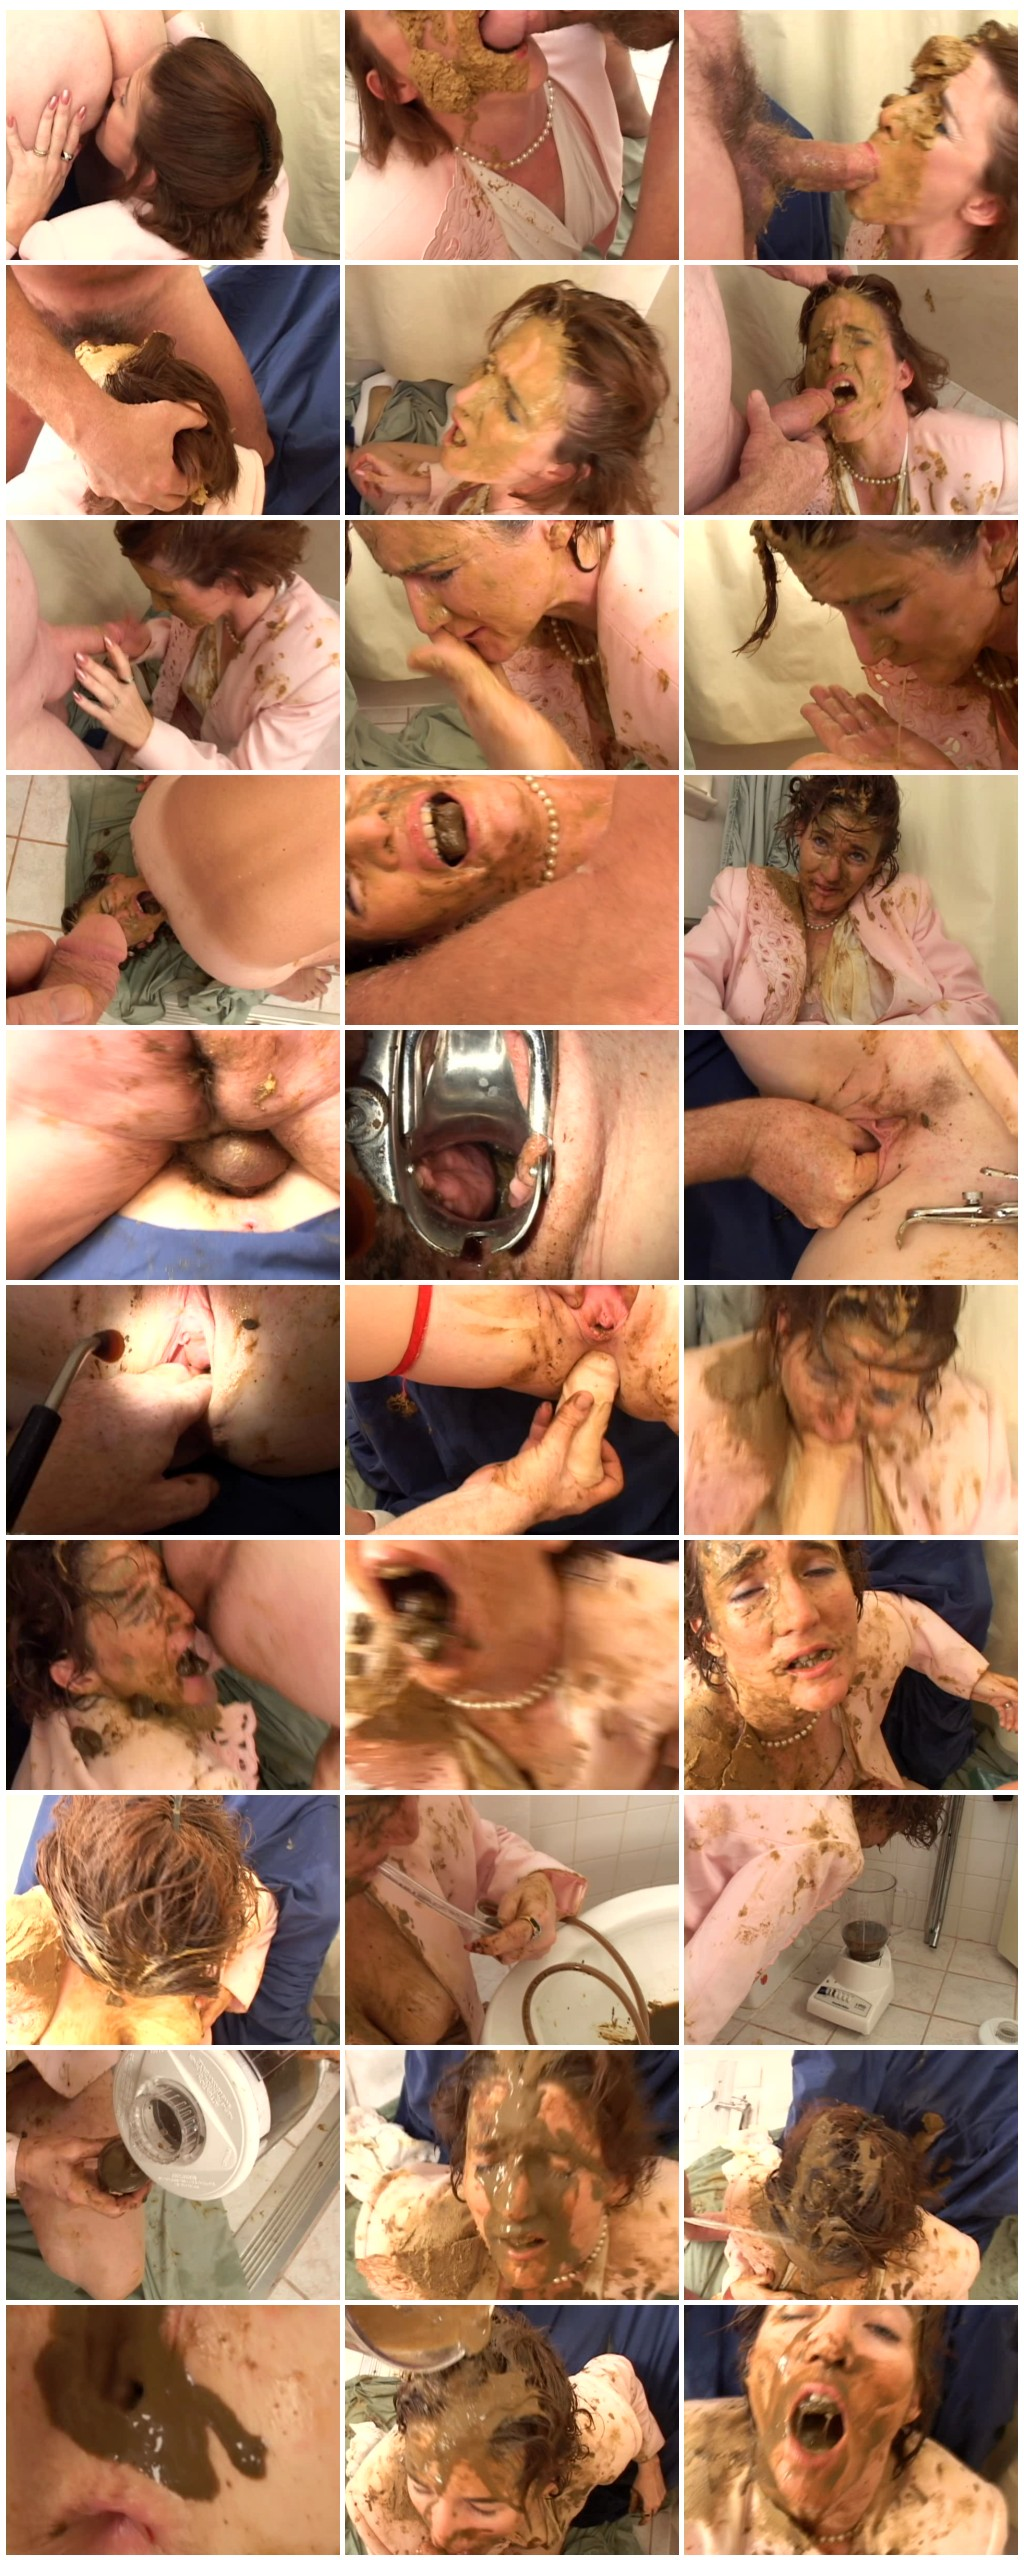 Hightide Video PrettyLisa s Amateur Tapes Vol. 3 Shitfreaks Pretty Lisa thumb - Hightide-Video - PrettyLisa s Amateur Tapes Vol  3 Shitfreaks - Pretty Lisa [Scat sex, shit sex,groups-couples,smearing,oral sex,masturbation,pissing,lick ass,eat shit ]